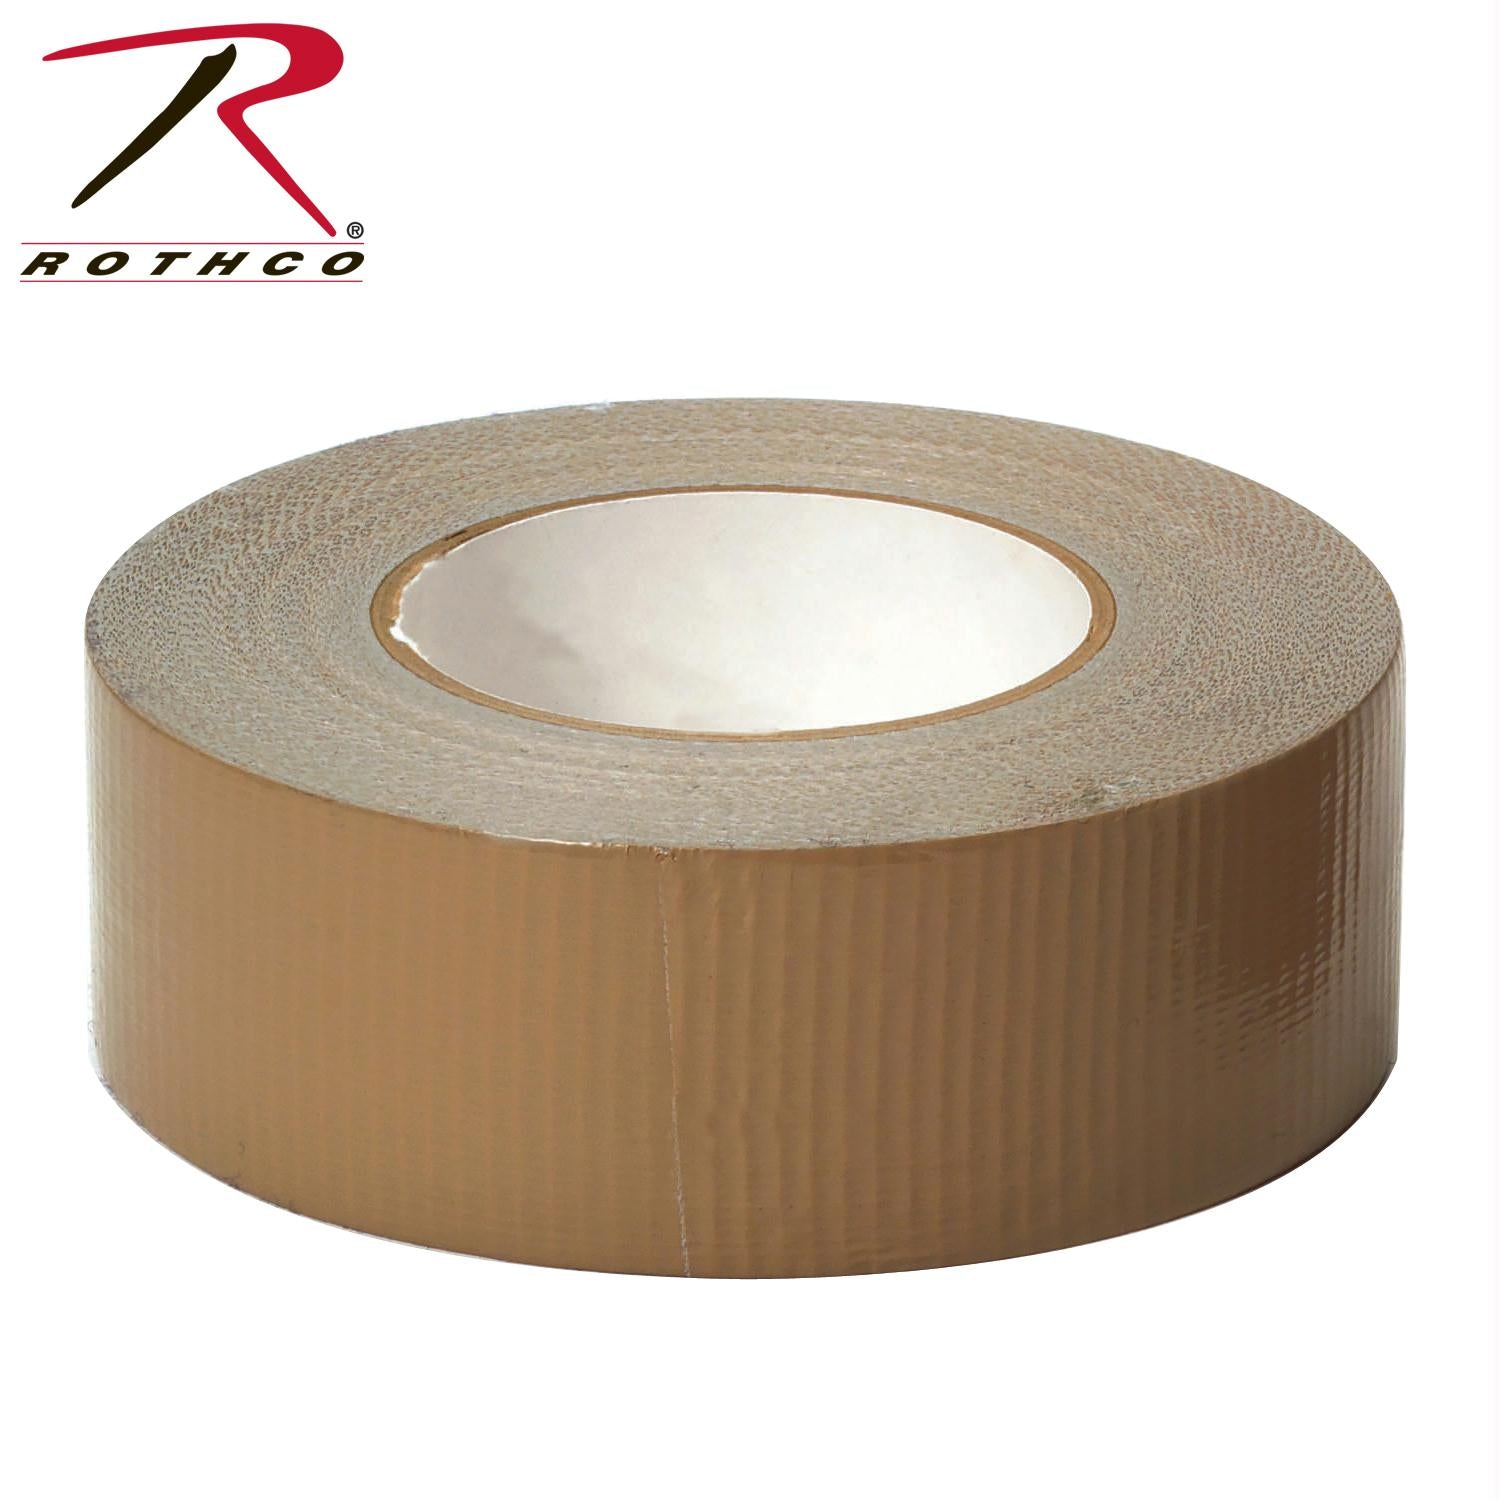 Rothco Military Duct Tape AKA 100 Mile An Hour Tape - Coyote Brown